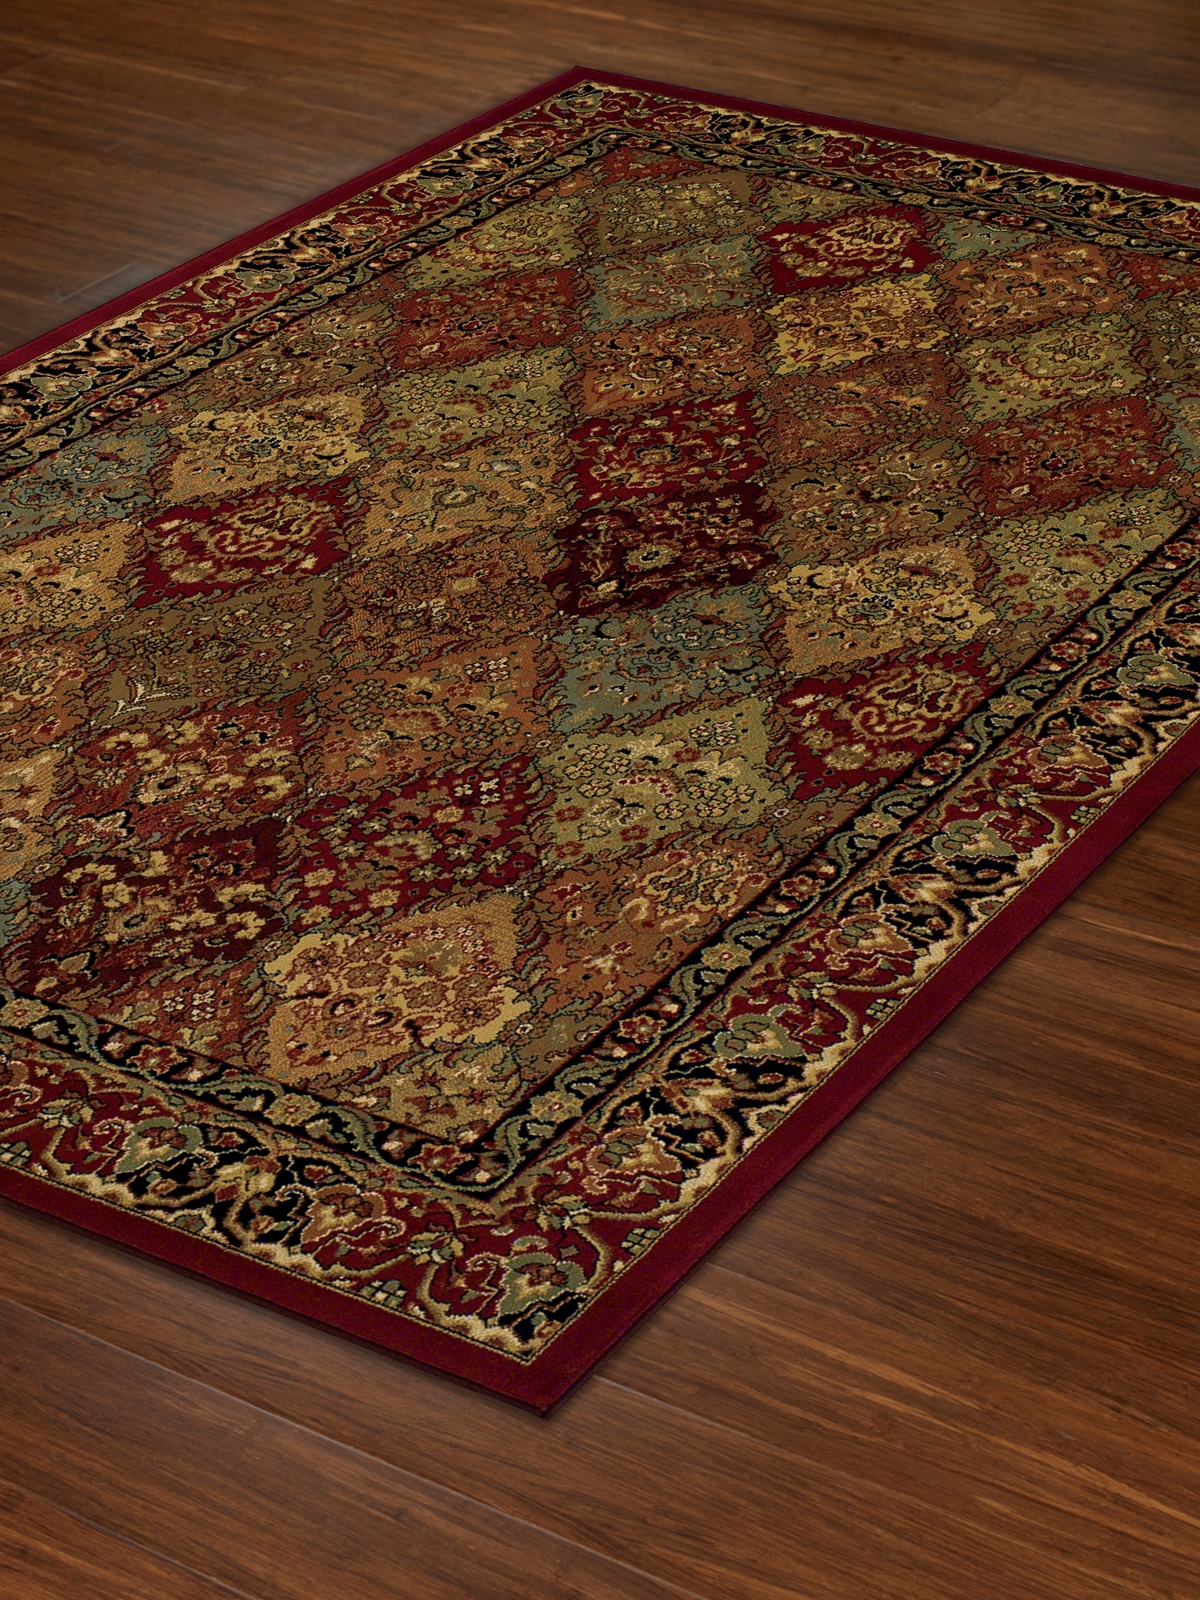 Dalyn Wembley Wb38 Red Area Rug Free Shipping